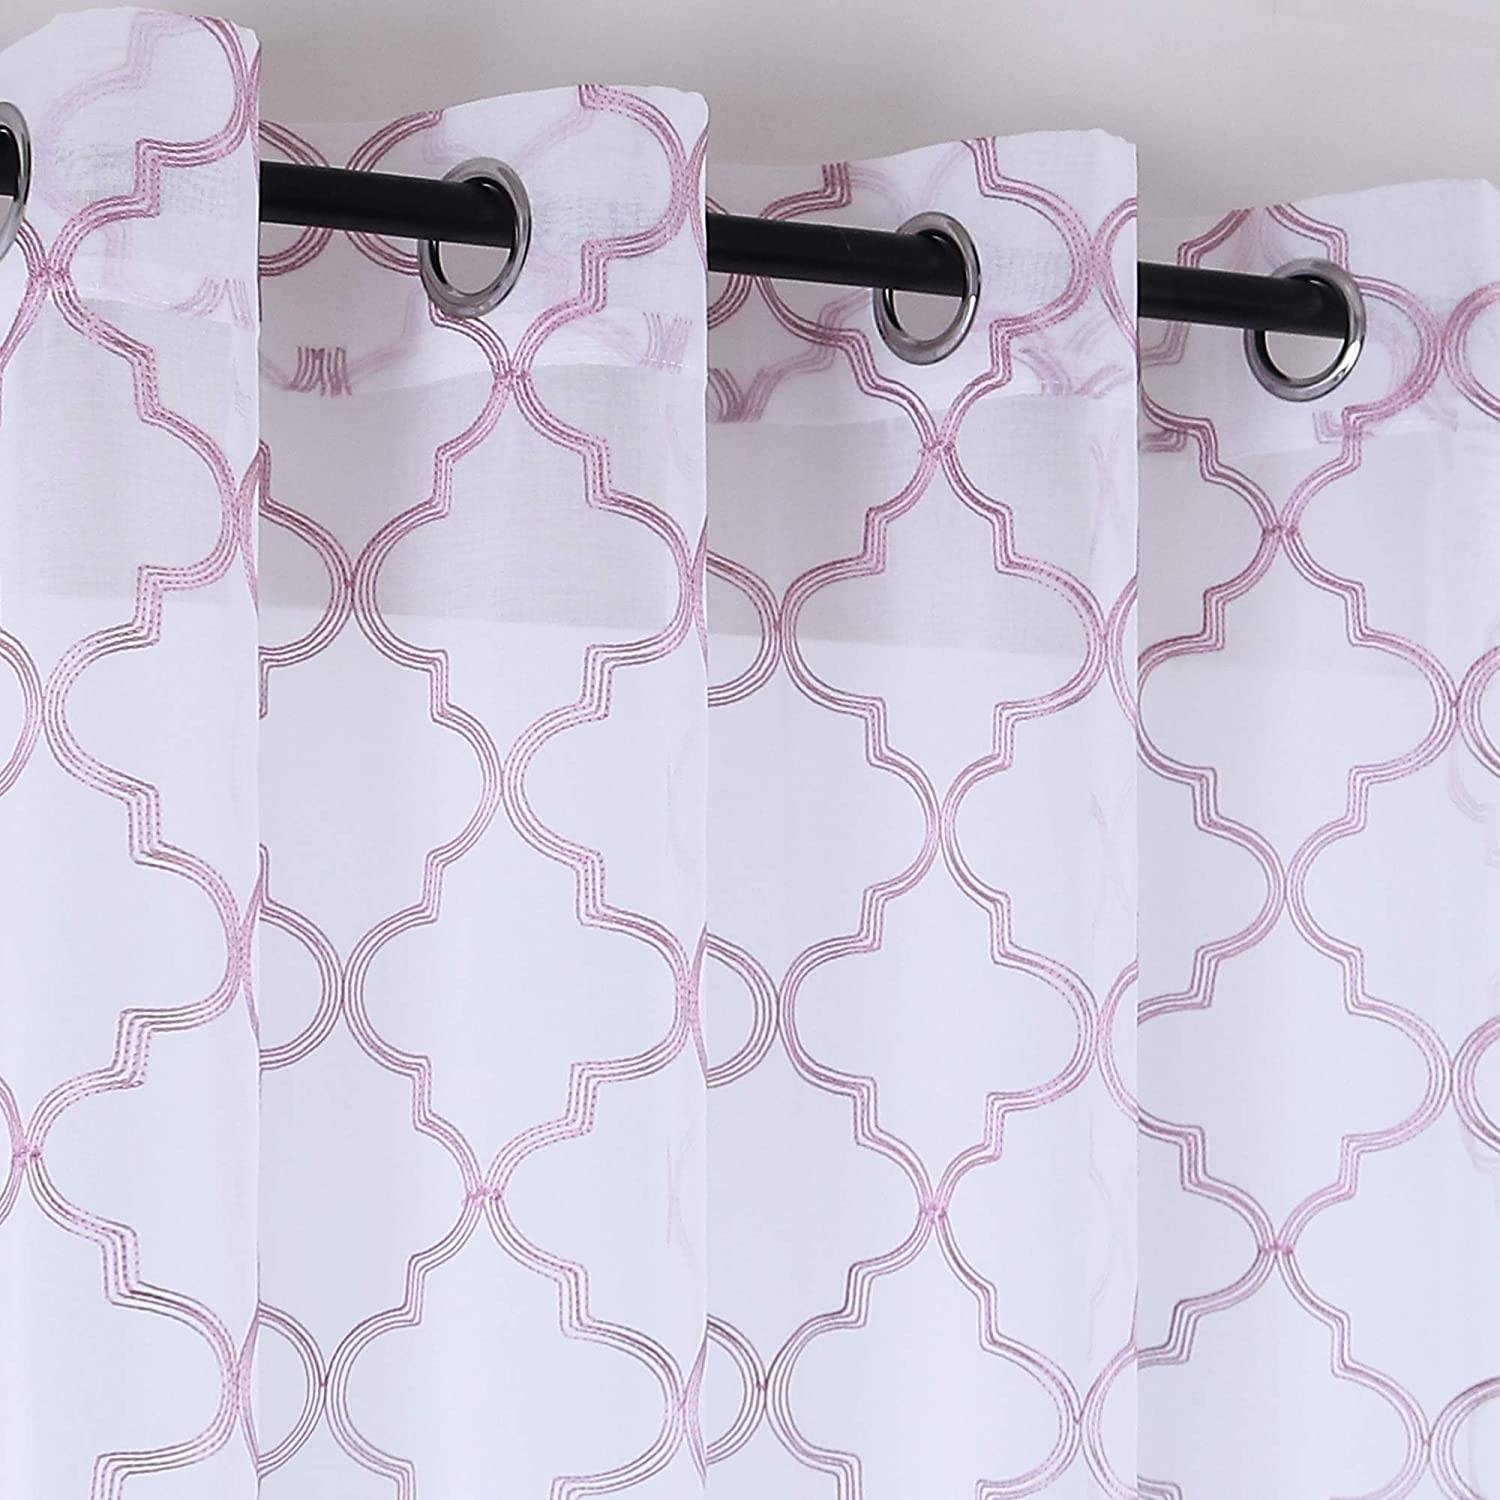 KEQIAOSUOCAI Rose Pink Moroccan Tile Embroidered on White Semi Sheer Curtains for Kids Room Girls Room Faux Linen Voile with Grommet 54 inches Length Set of 2 Panels Pink Rose Gold Pattern